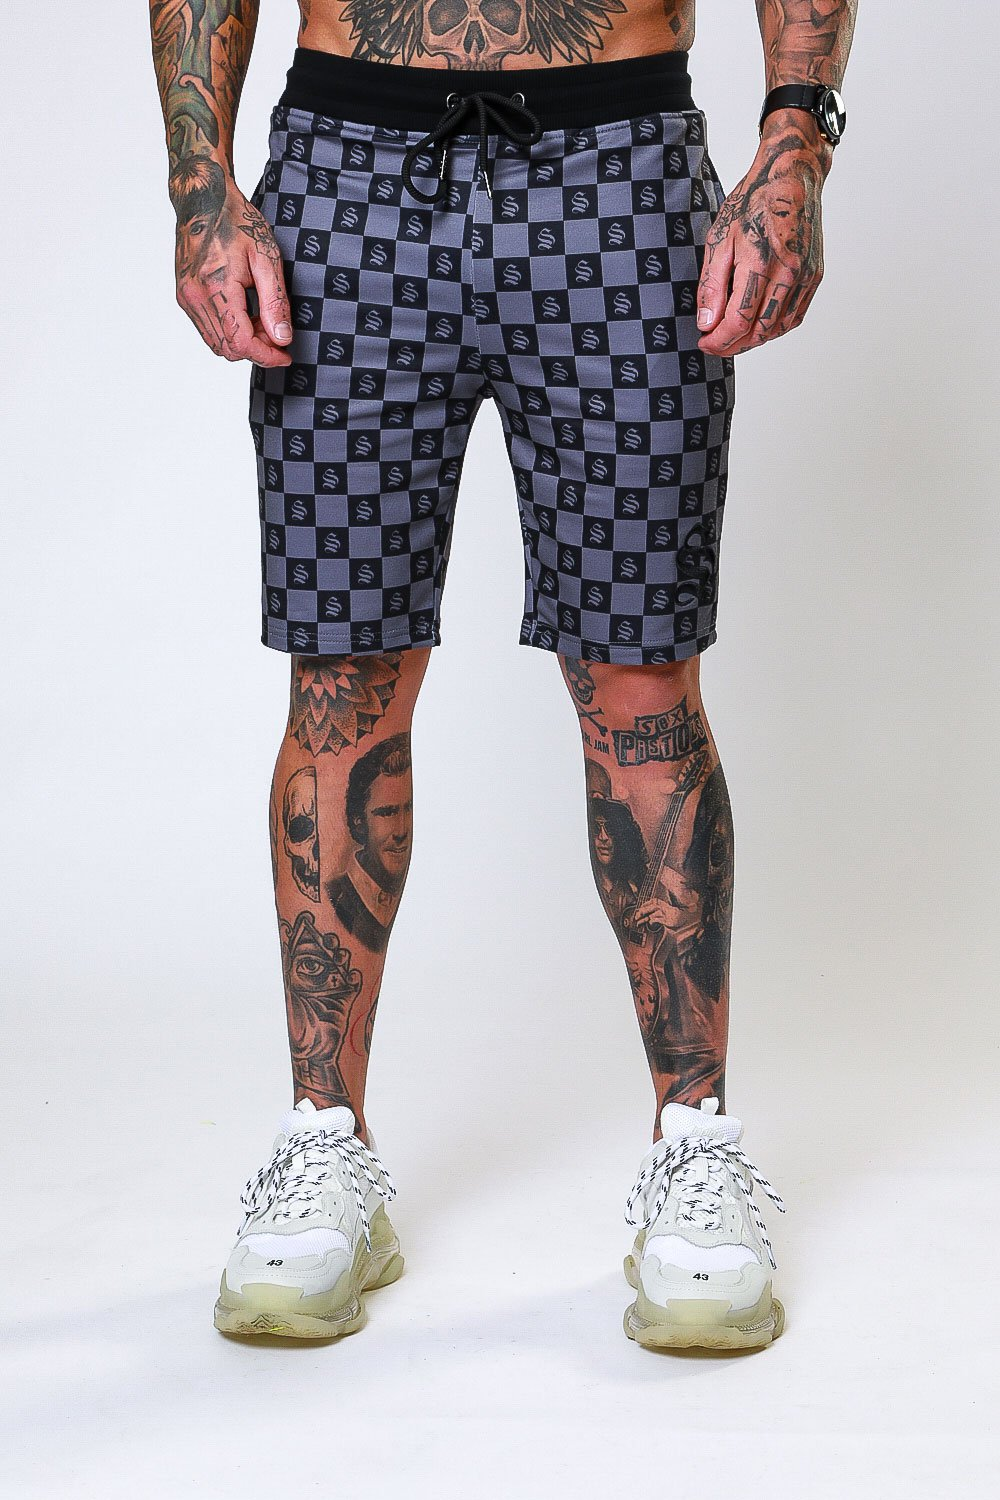 Grey Checkerboard Jersey Shorts - ZANMODA